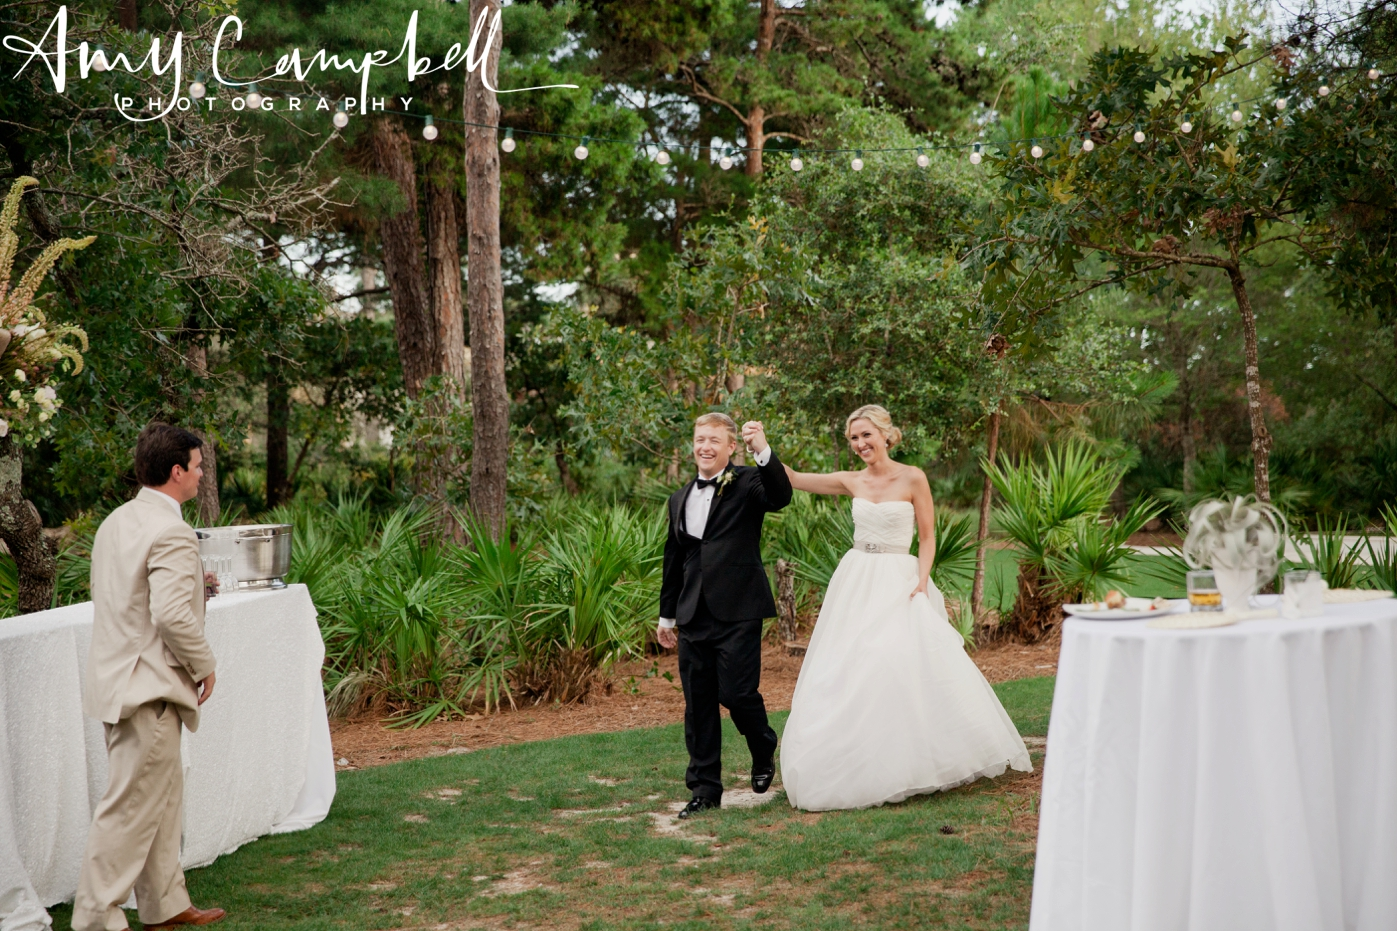 emilyreed_wed_blog_amycampbellphotography_0078.jpg